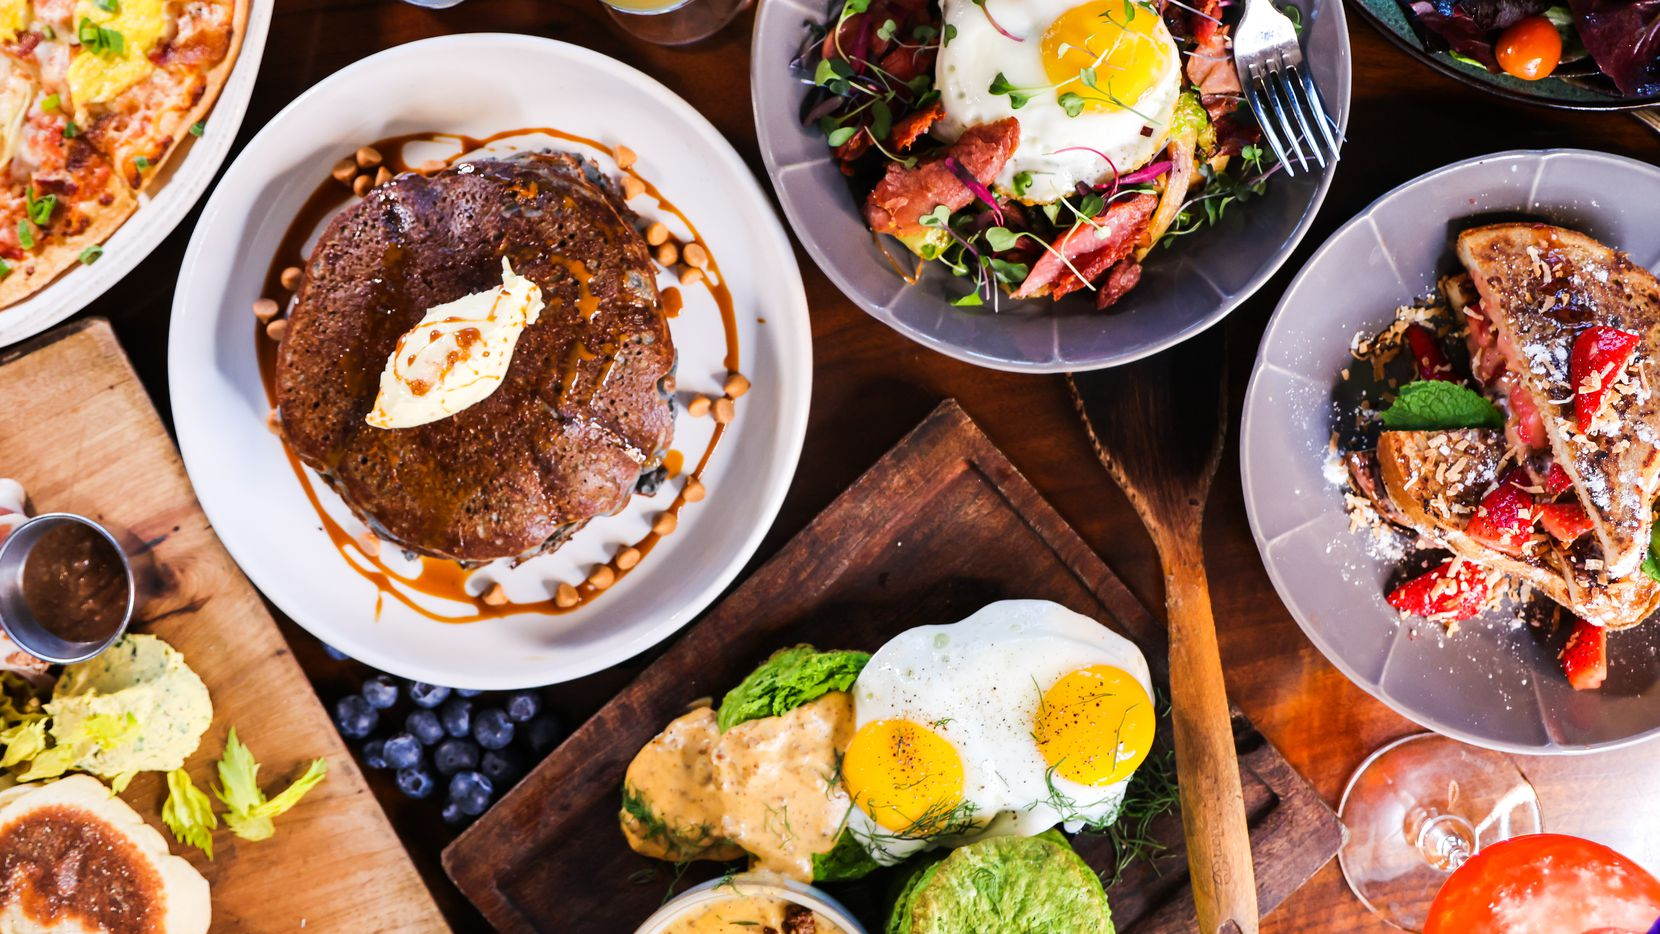 Encina launches a new brunch menu in time for Mother's Day. From left, blue corn pancakes, biscuits and gravy, beet and avocado salad and stuffed French toast.